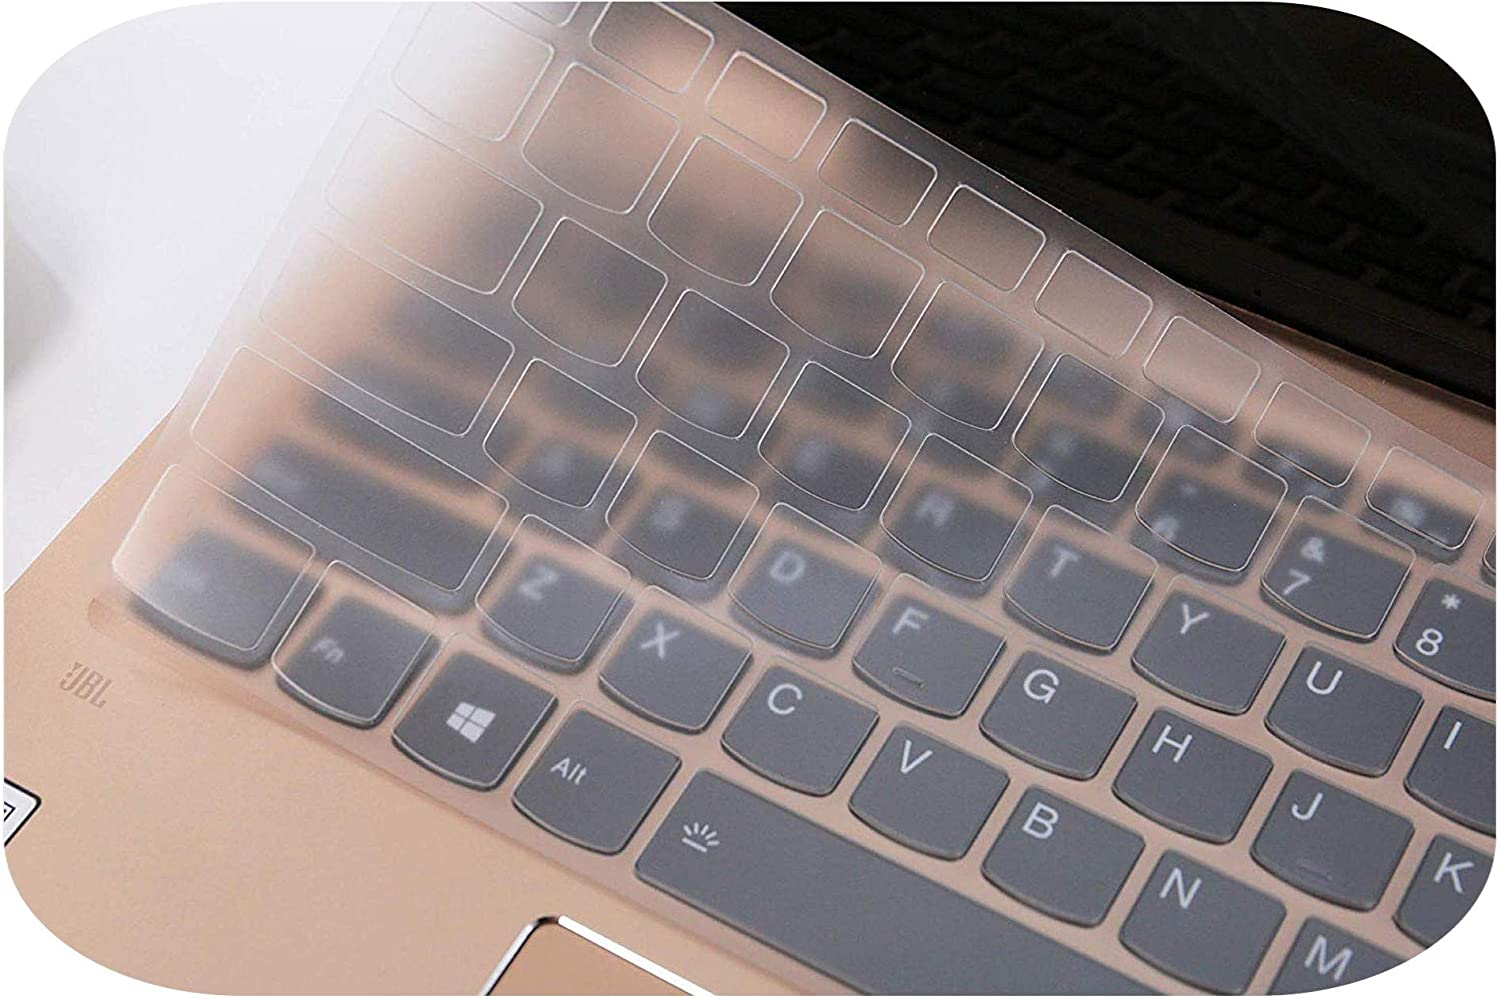 for Lenovo Yoga 920 C930 13.9 Inch 920 13Ikb Clear Yoga 6 Pro for Lenovo Yoga 920 13.9 Keyboard Cover Skin Protector